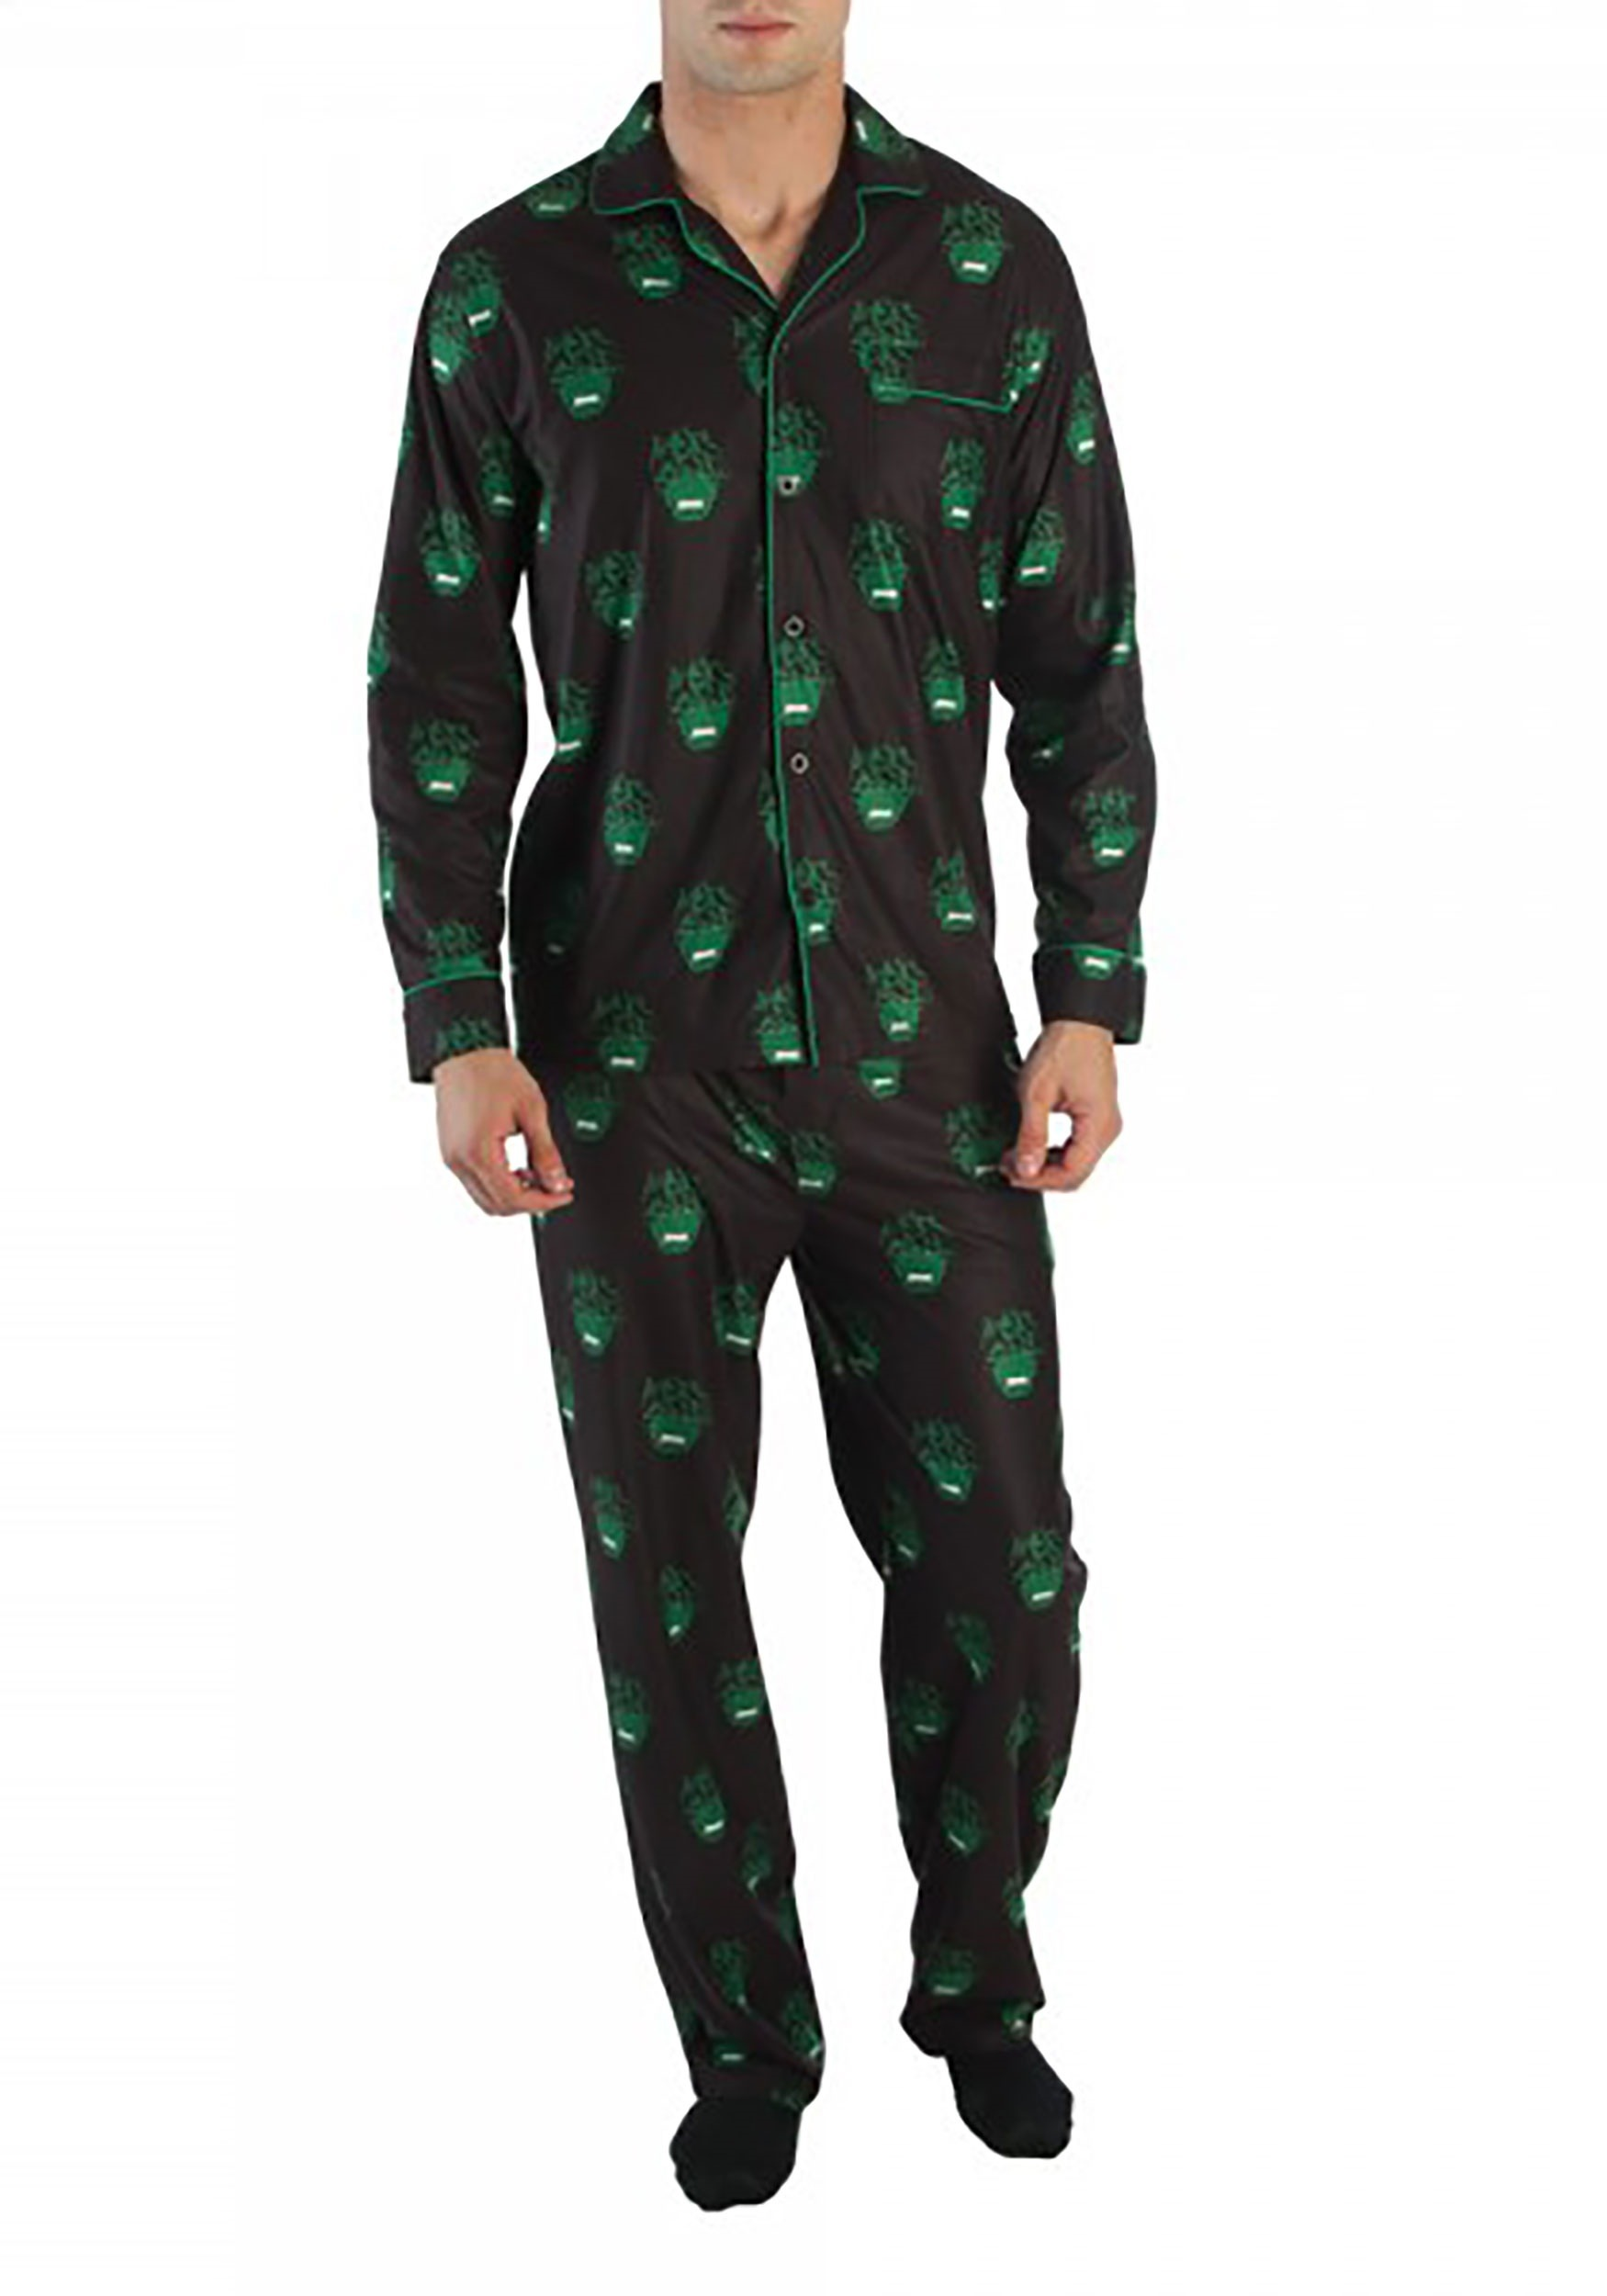 Marvel Hulk All Over Print Men's Pajama Set